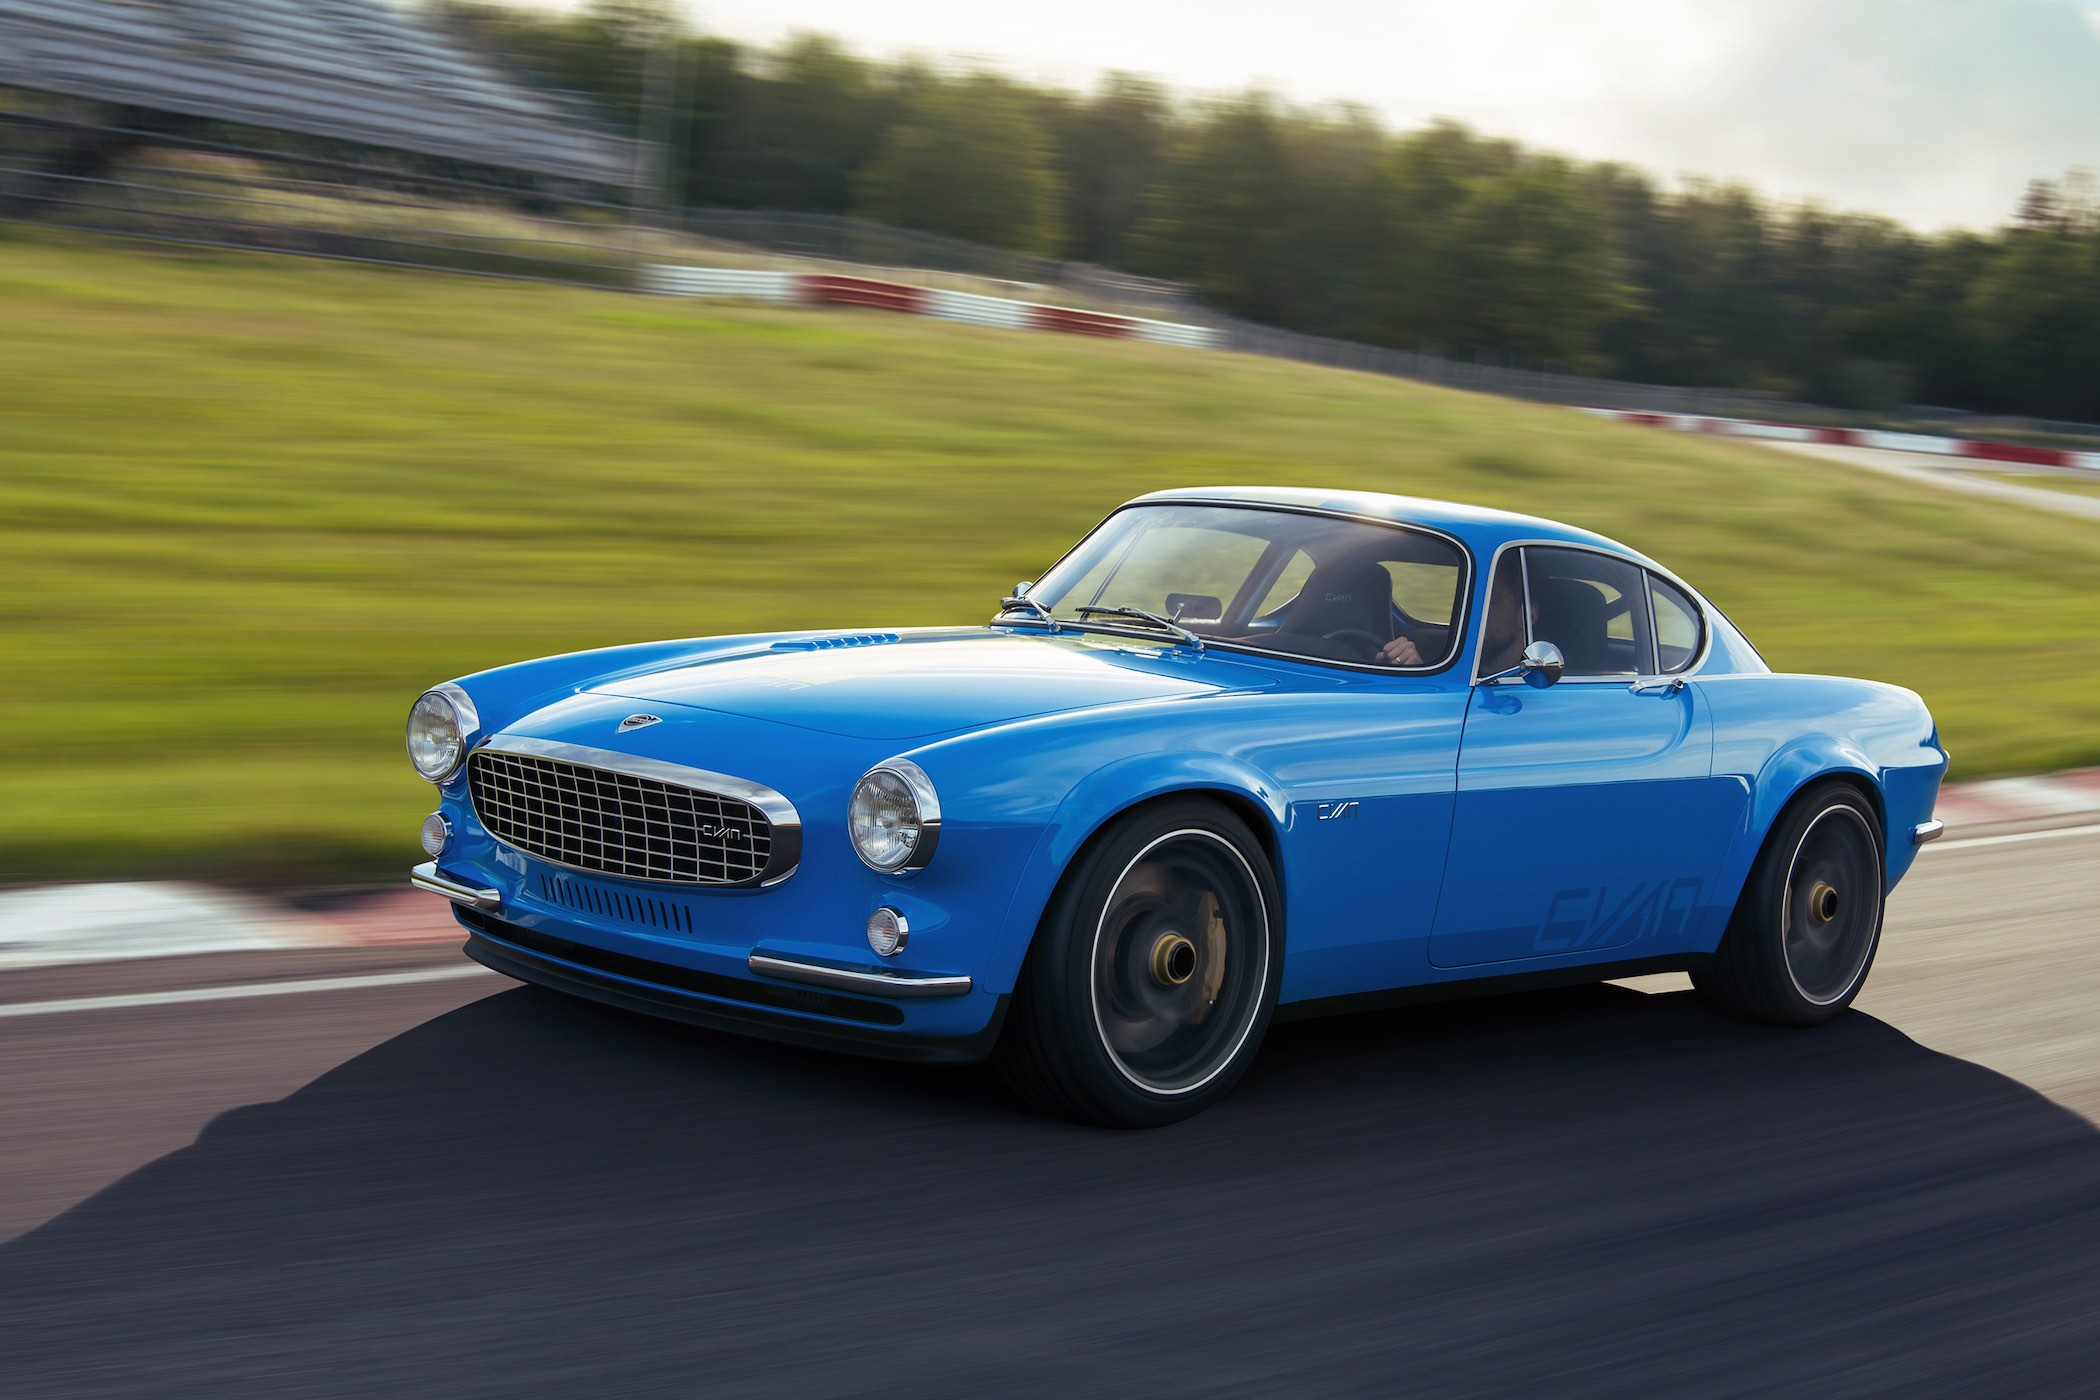 The Petrolhead Corner - Restomod Volvo P1800 Cyan